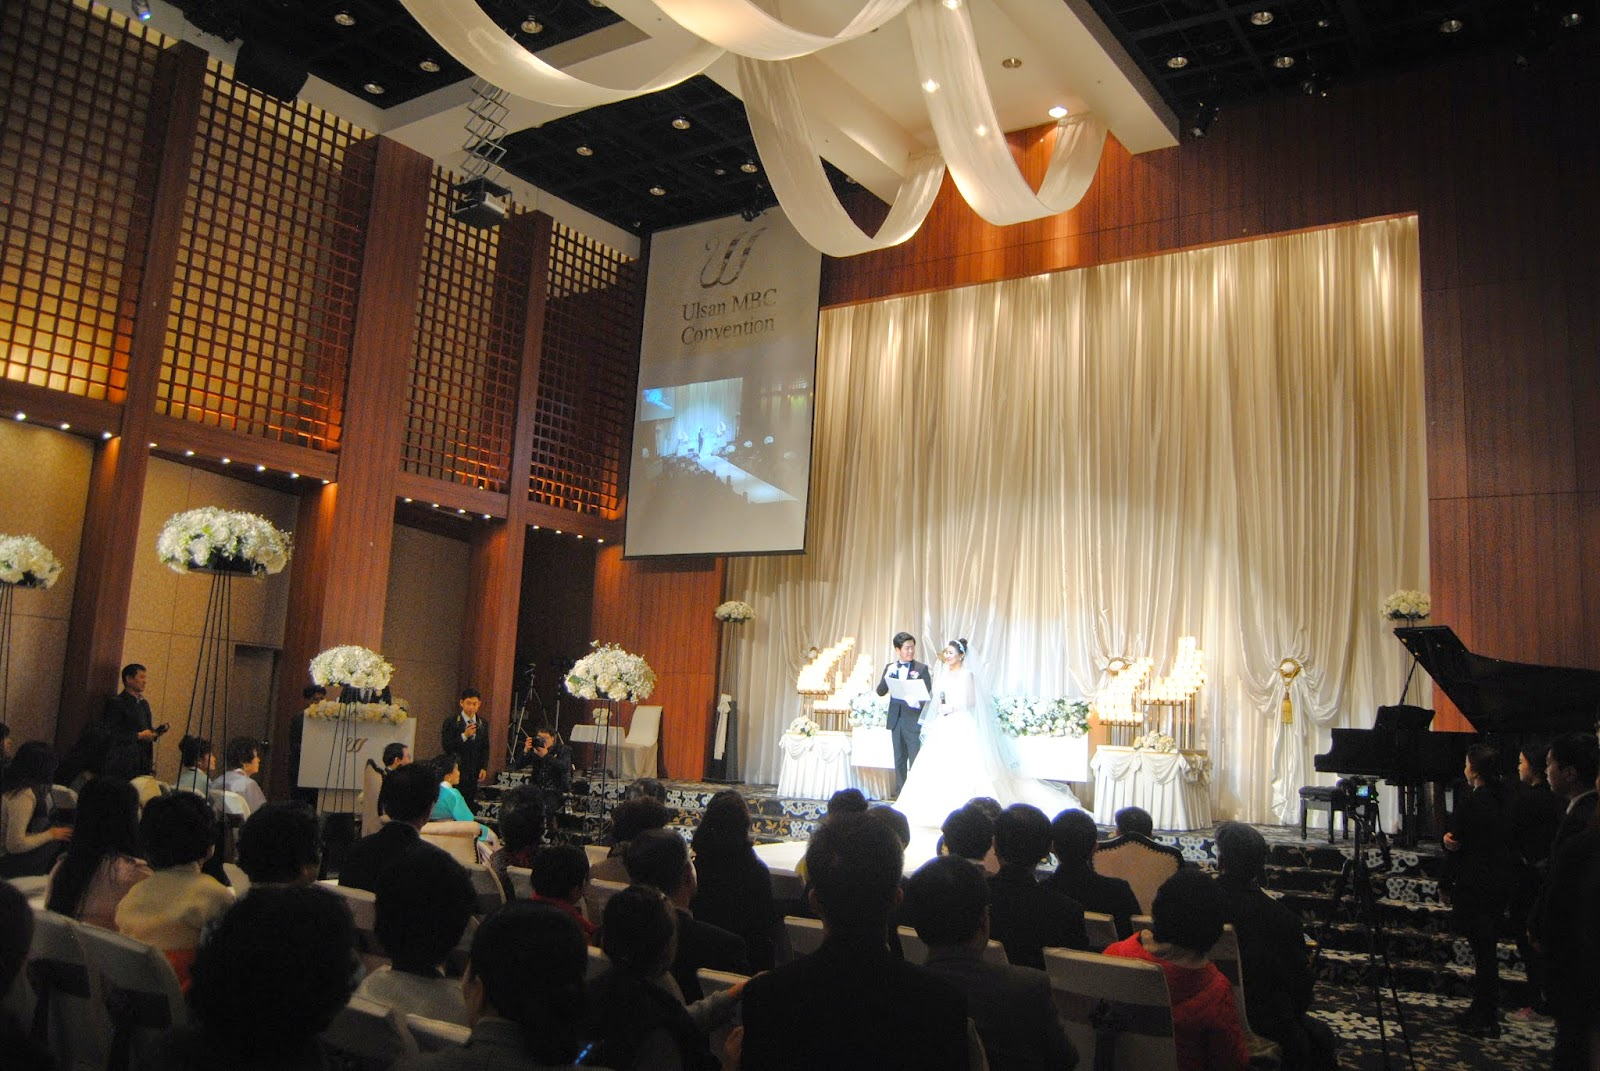 Waygookin round the world a korean wedding this is the wedding hall in which i attended the wedding as you can see its very showy the center aisle and the front area is actually a stage thecheapjerseys Image collections